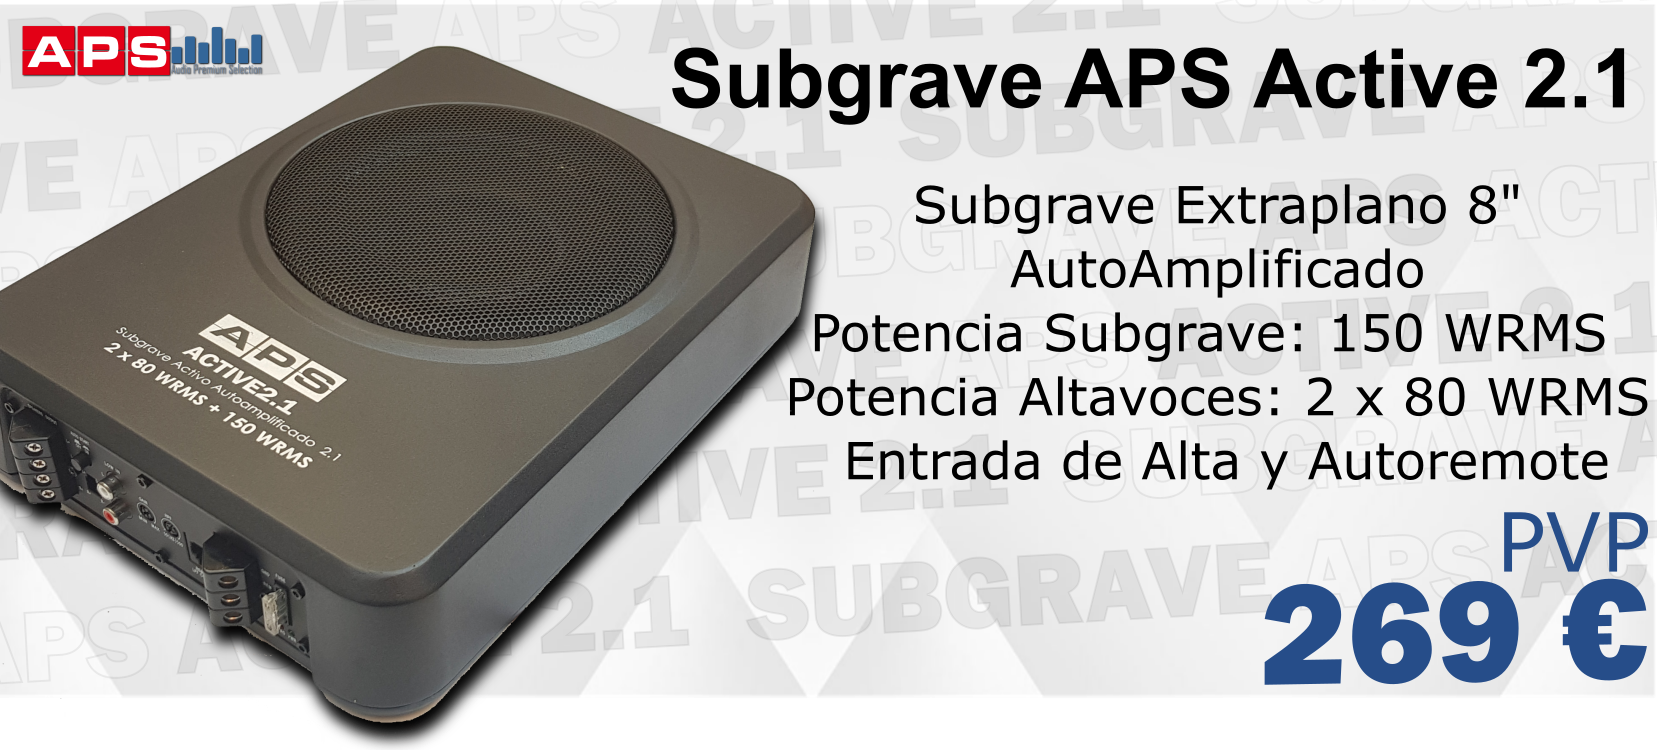 Subgrave APS Active 2.1